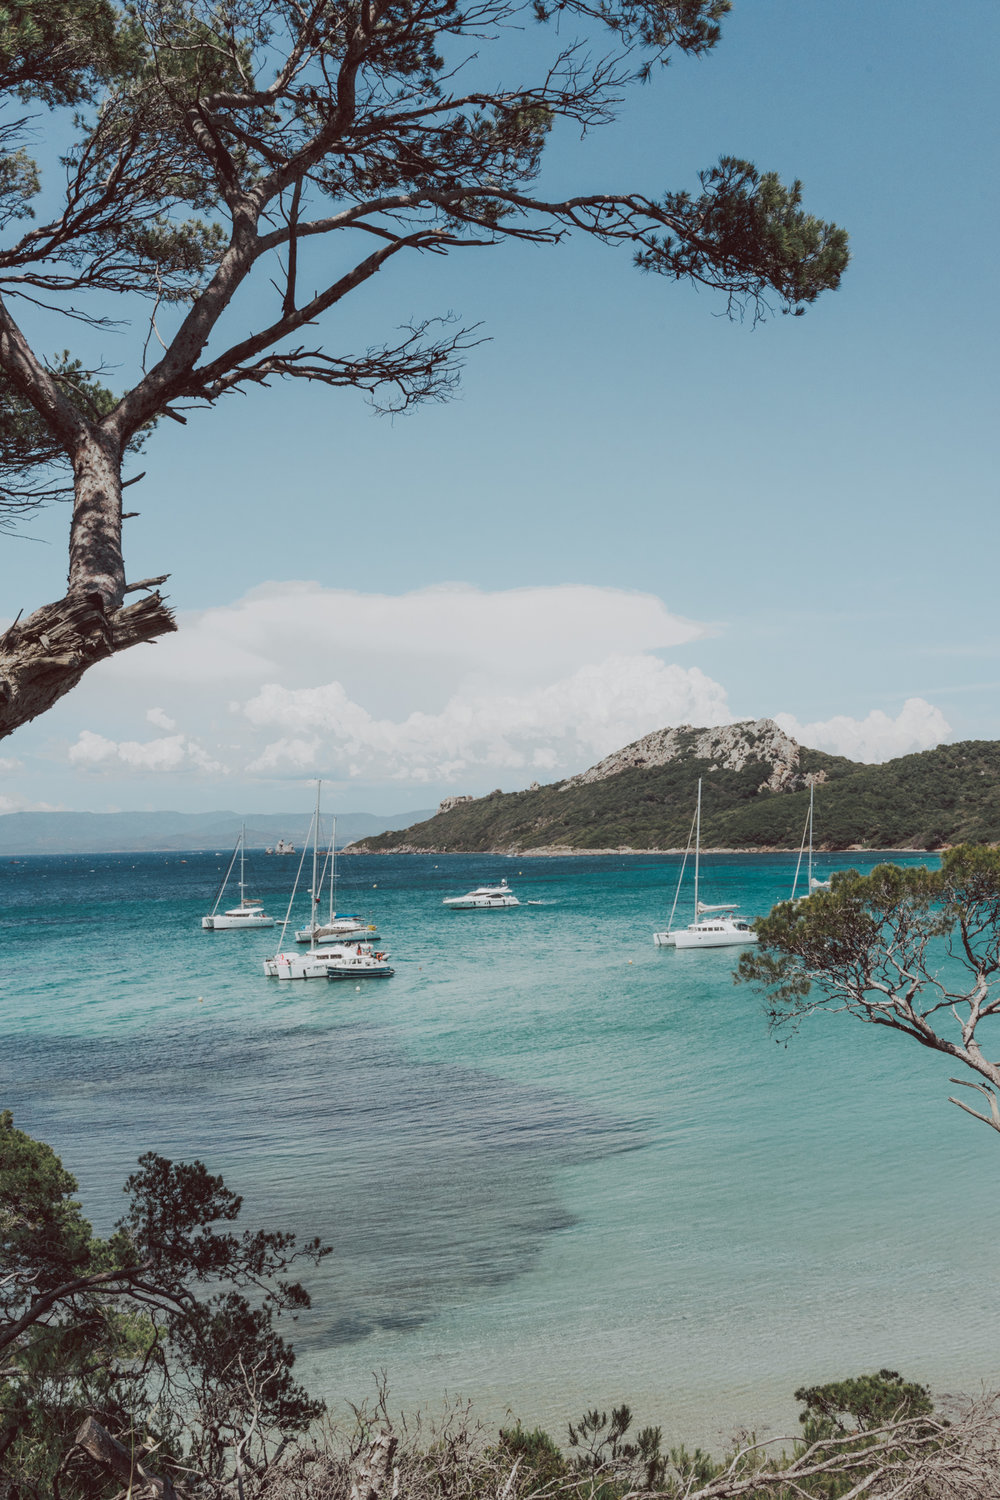 Hyeres Il de Porquerolles Market Beach Giens Things to do in Hyeres South of France - French Rivera #France #Provence #FrenchRivera #CotedAzur